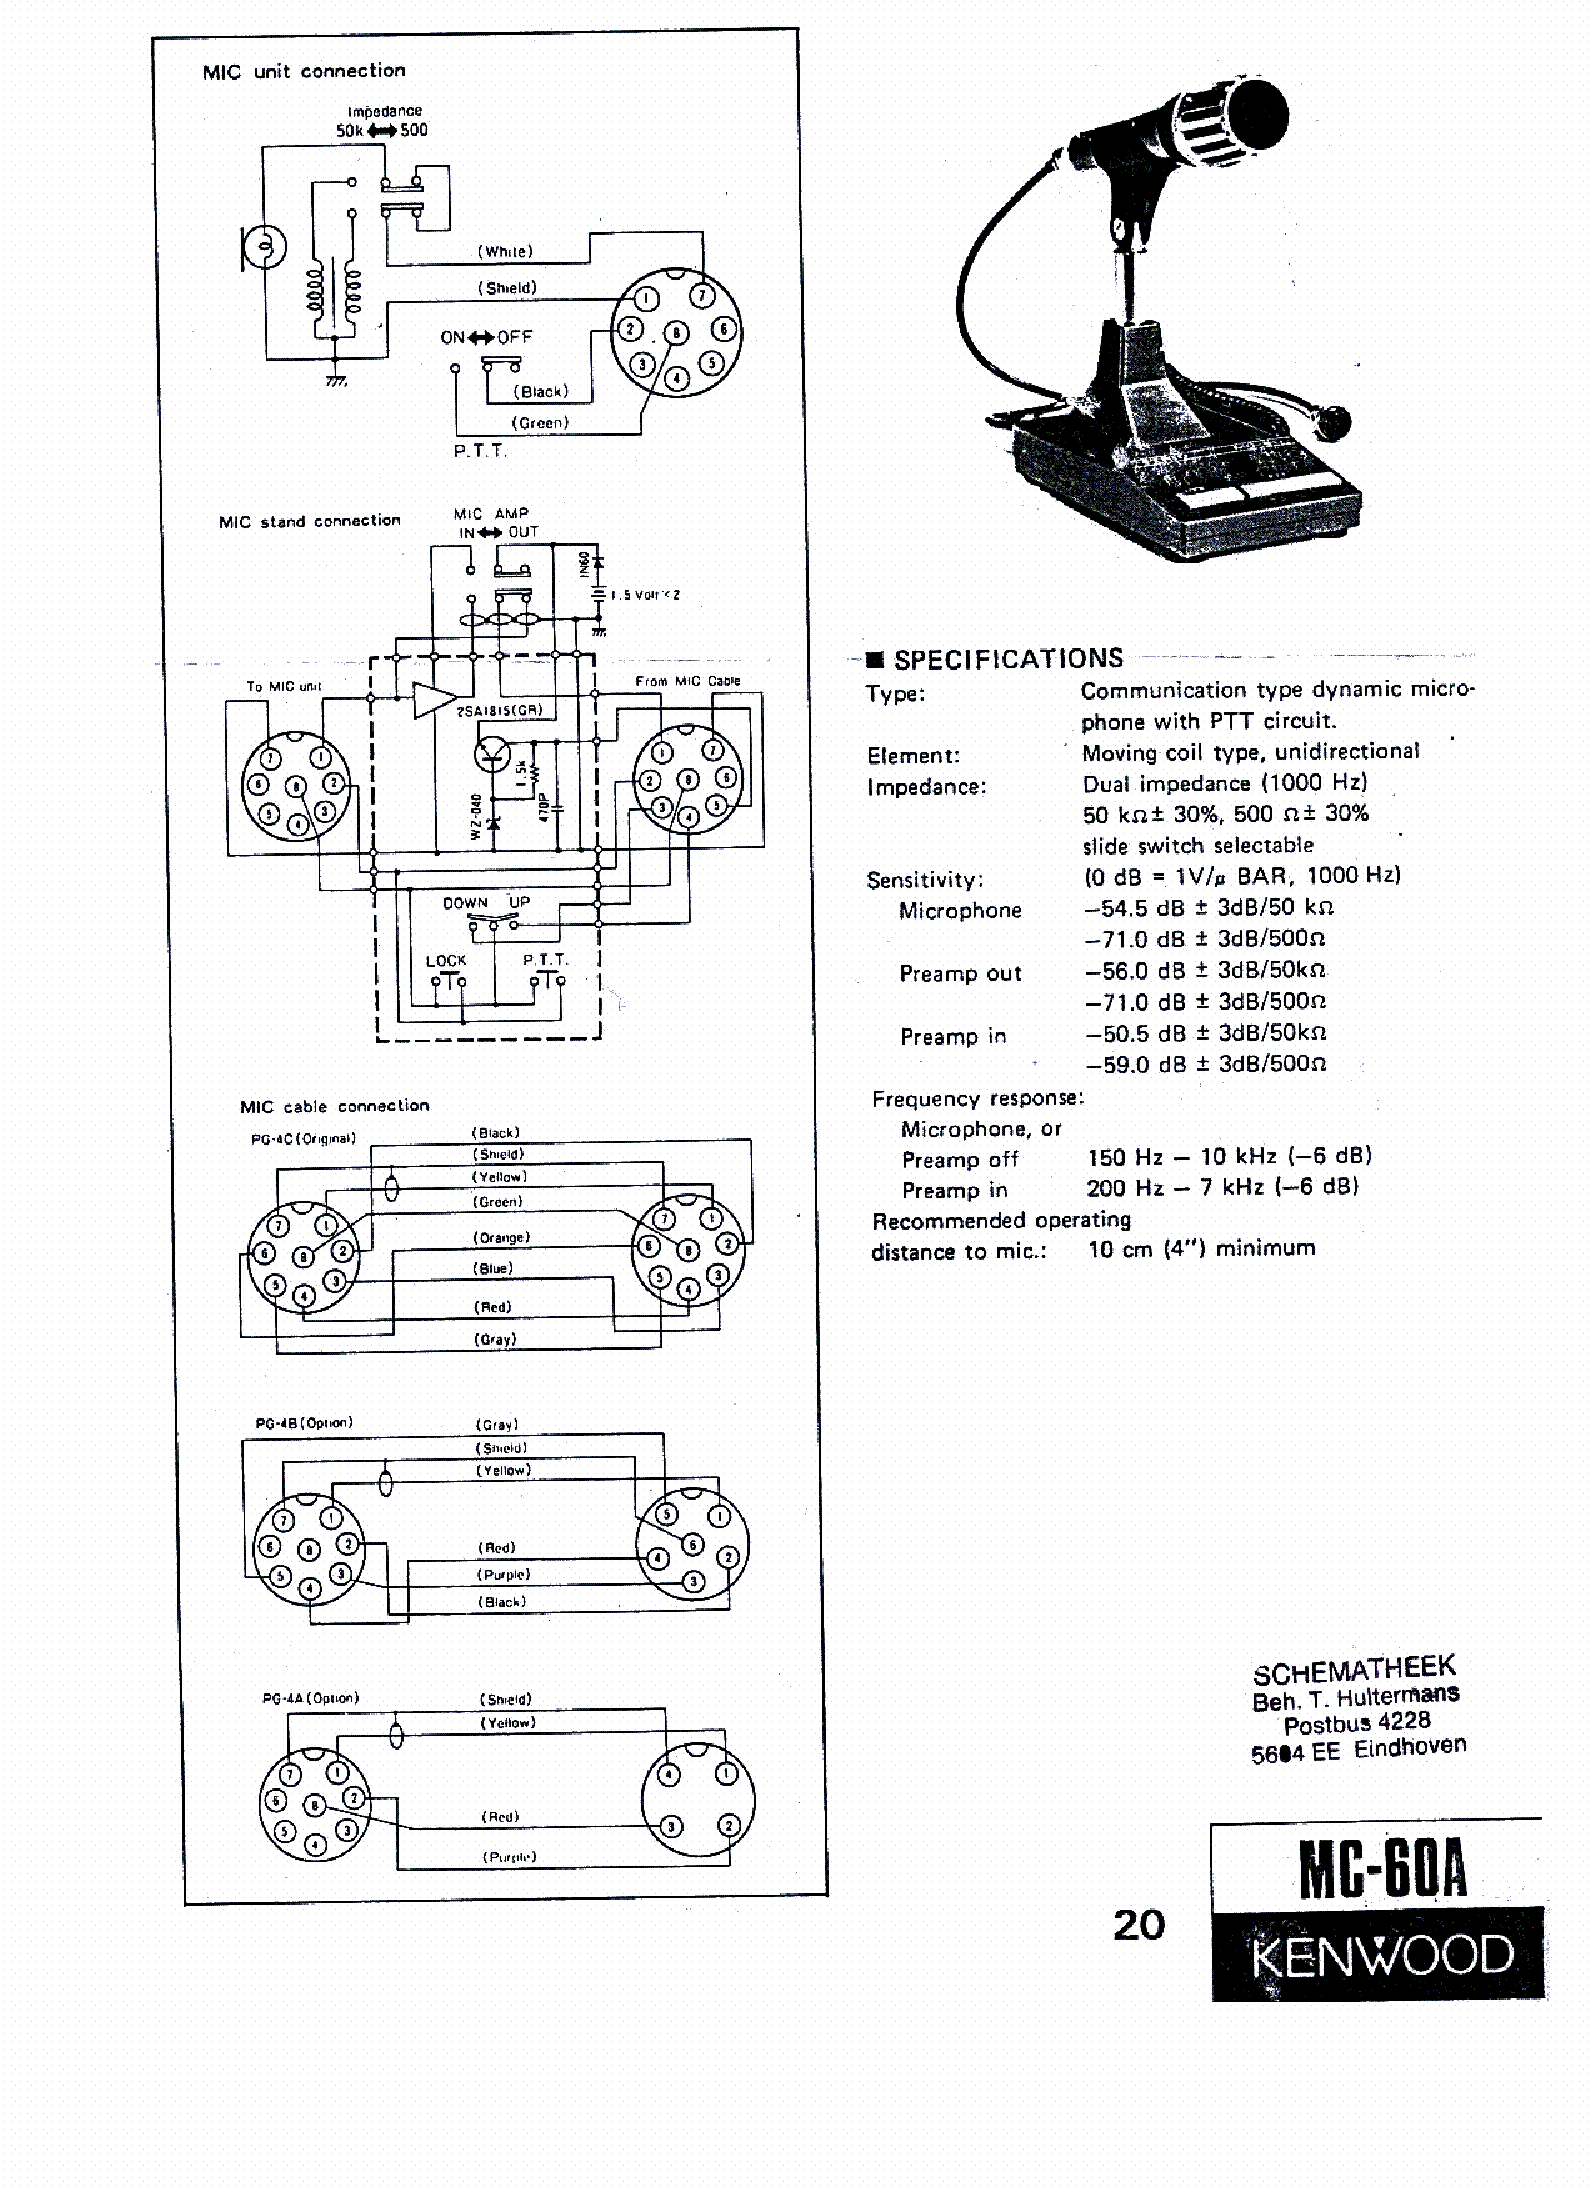 kenwood_mc 60a_sch.pdf_1 kenwood mc 60a sch service manual download, schematics, eeprom mc 60 wiring diagram at fashall.co